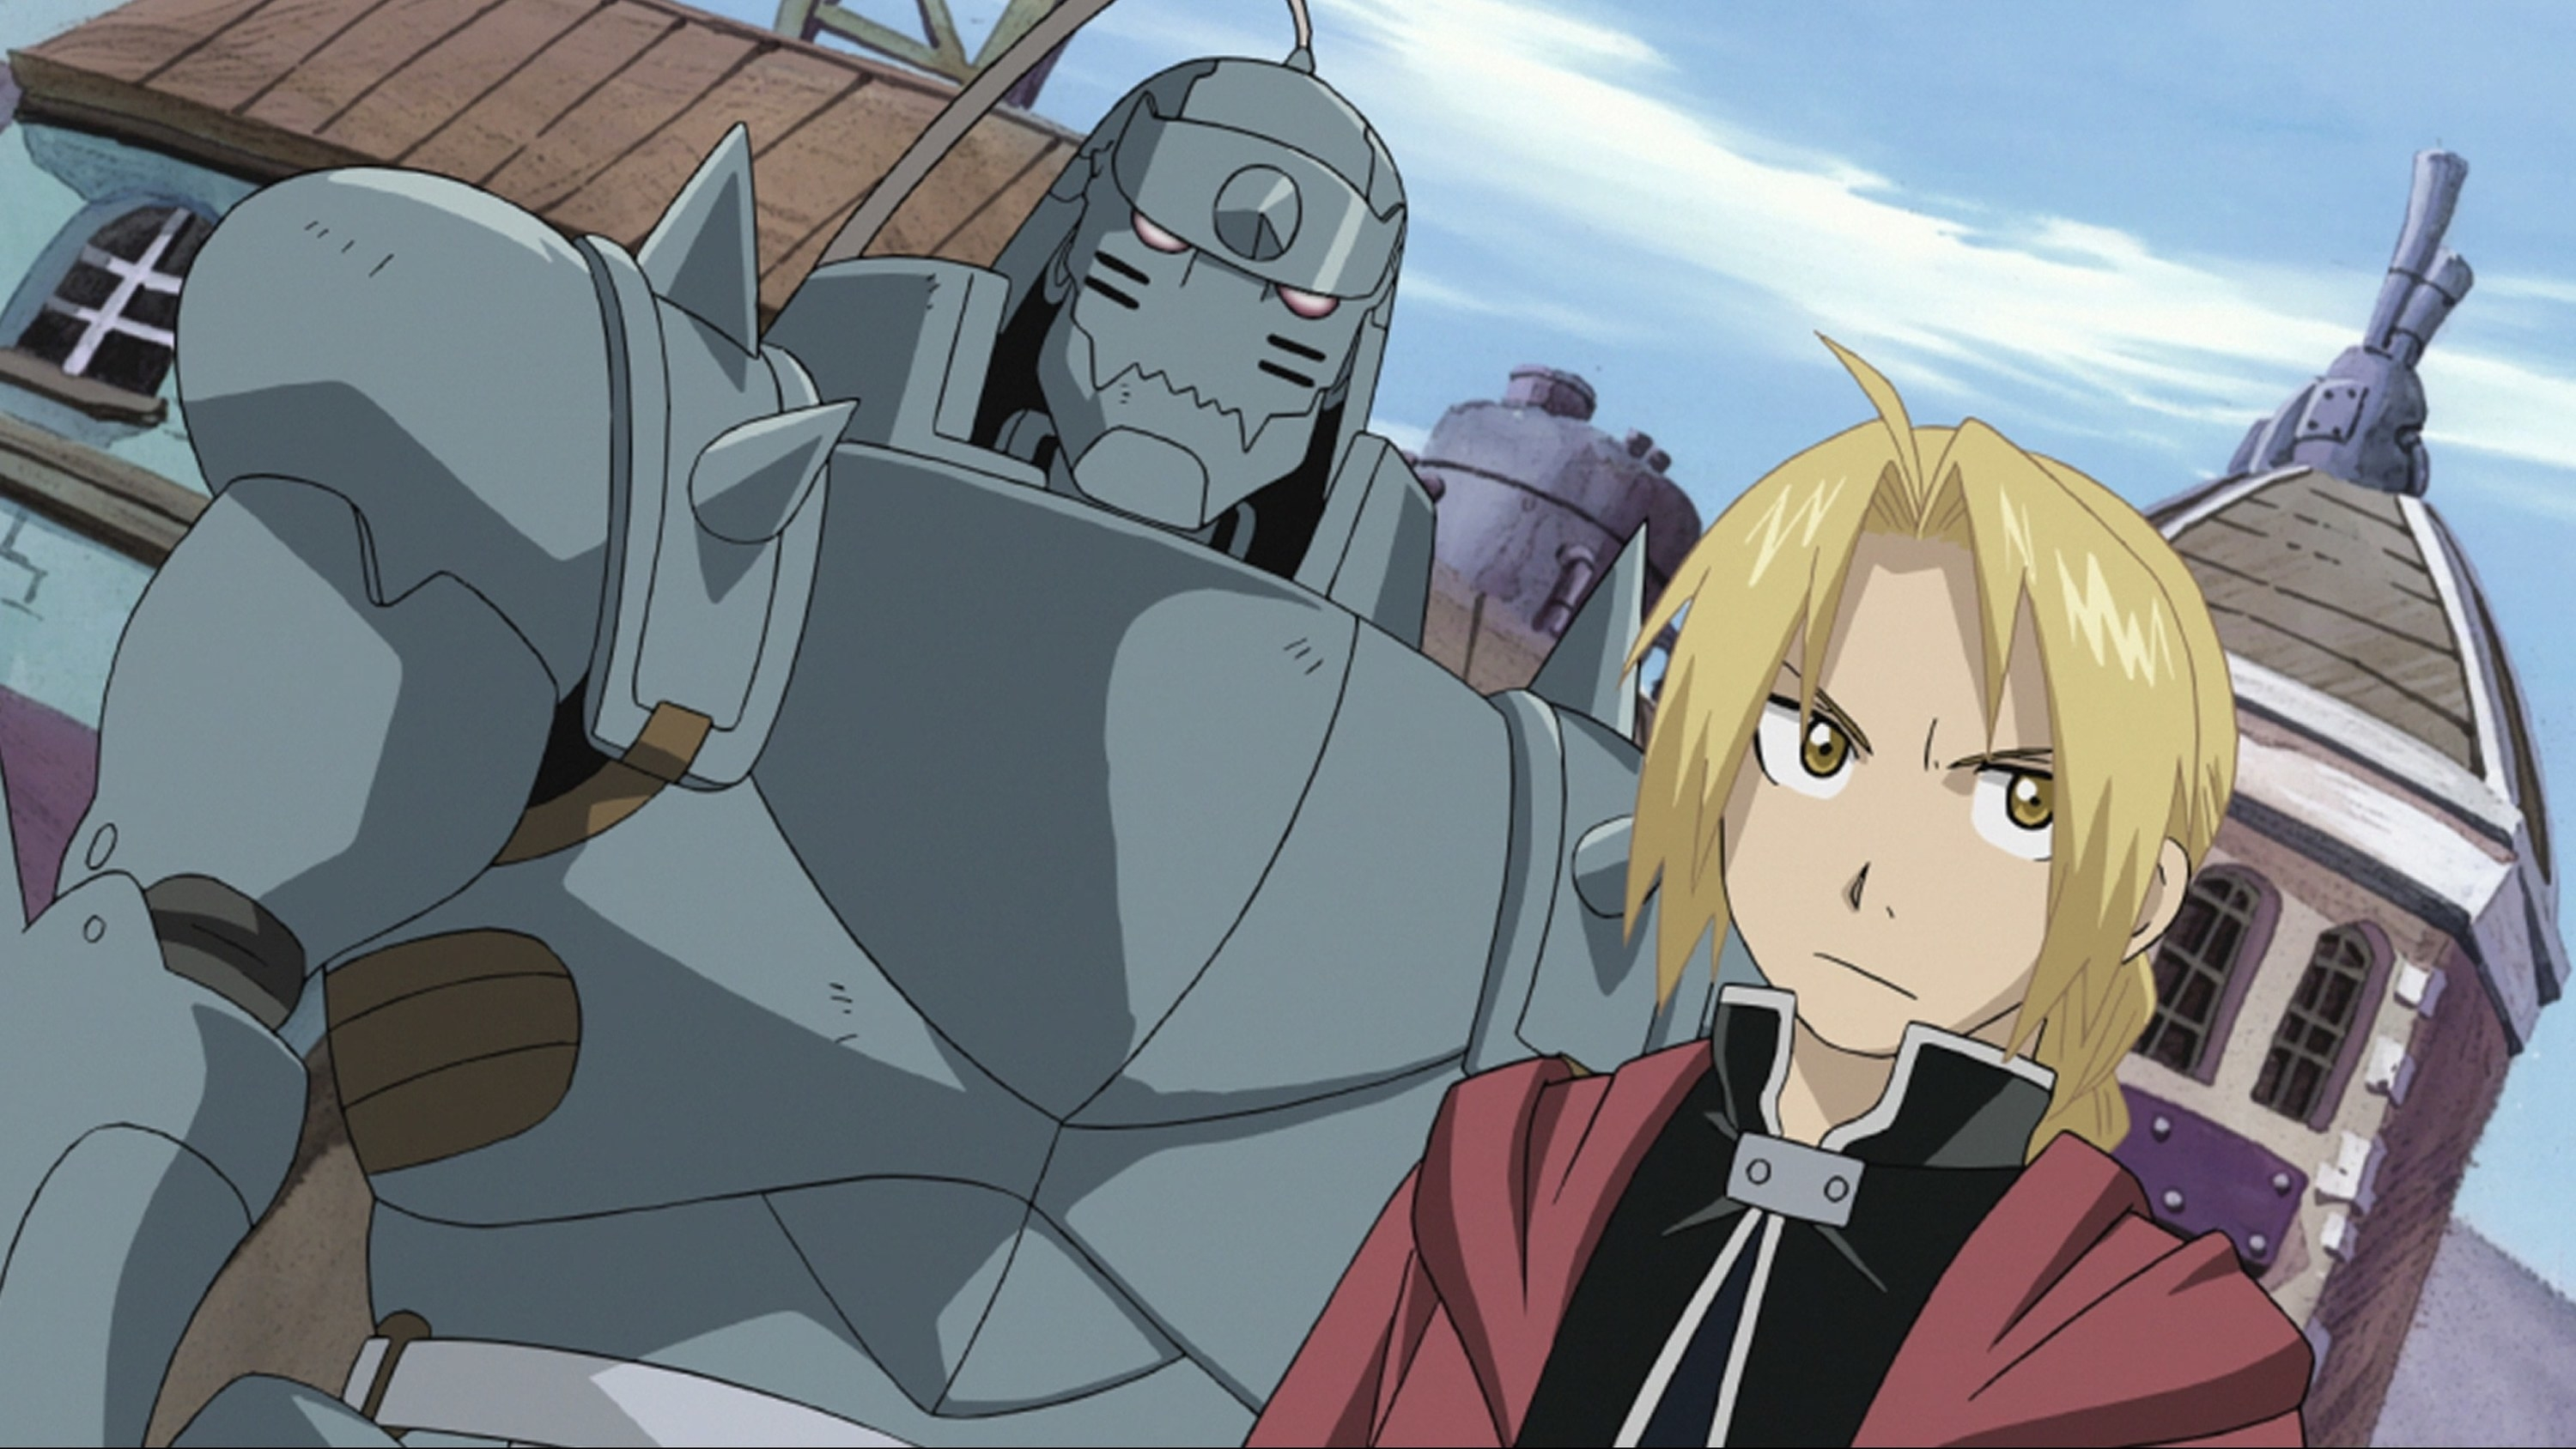 Alphonse and Elric looking into the distance with a serious expression